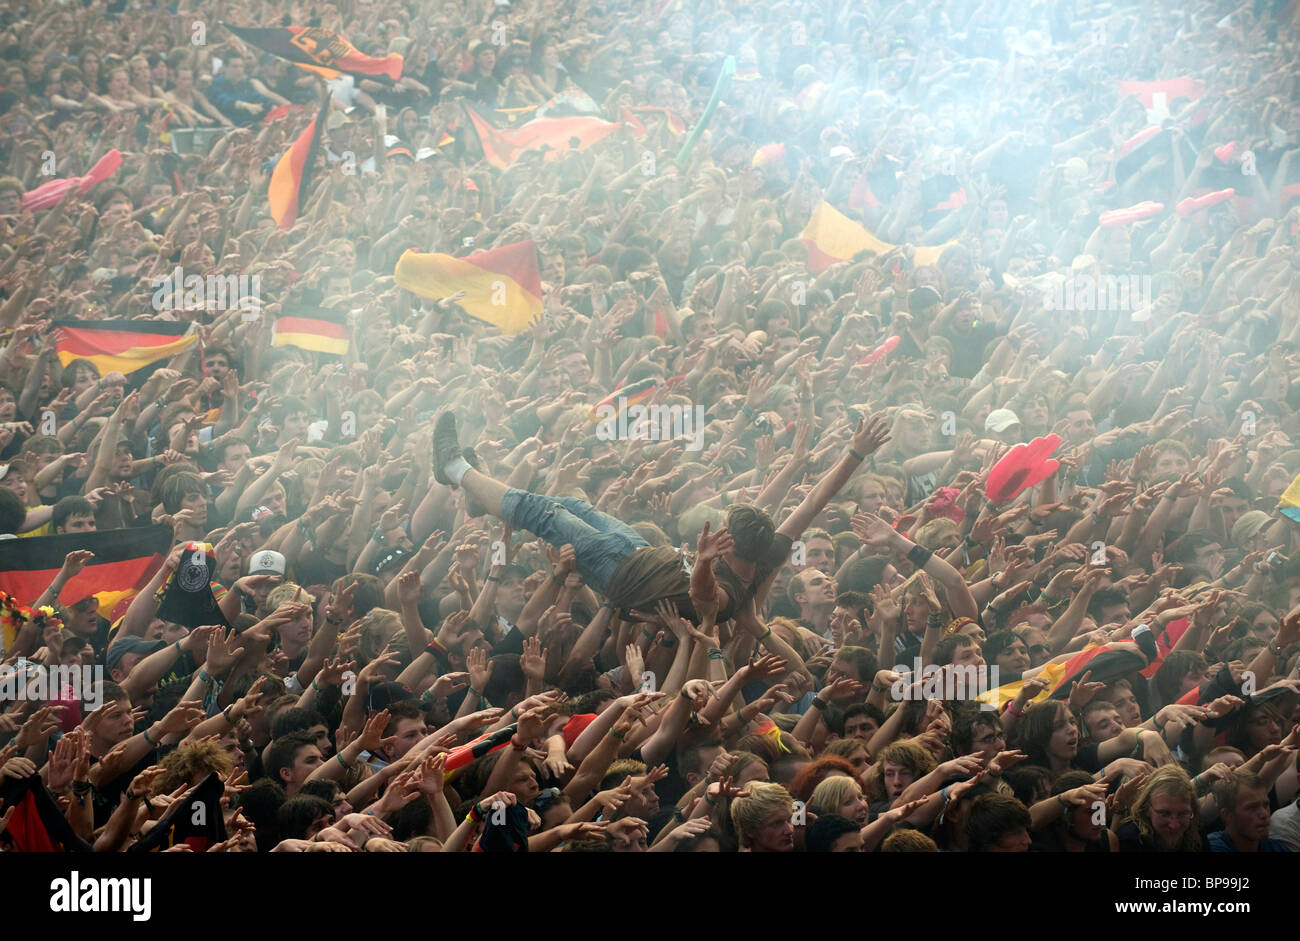 A European Football Championship game between Germany and Poland, Nuremberg, Germany - Stock Image